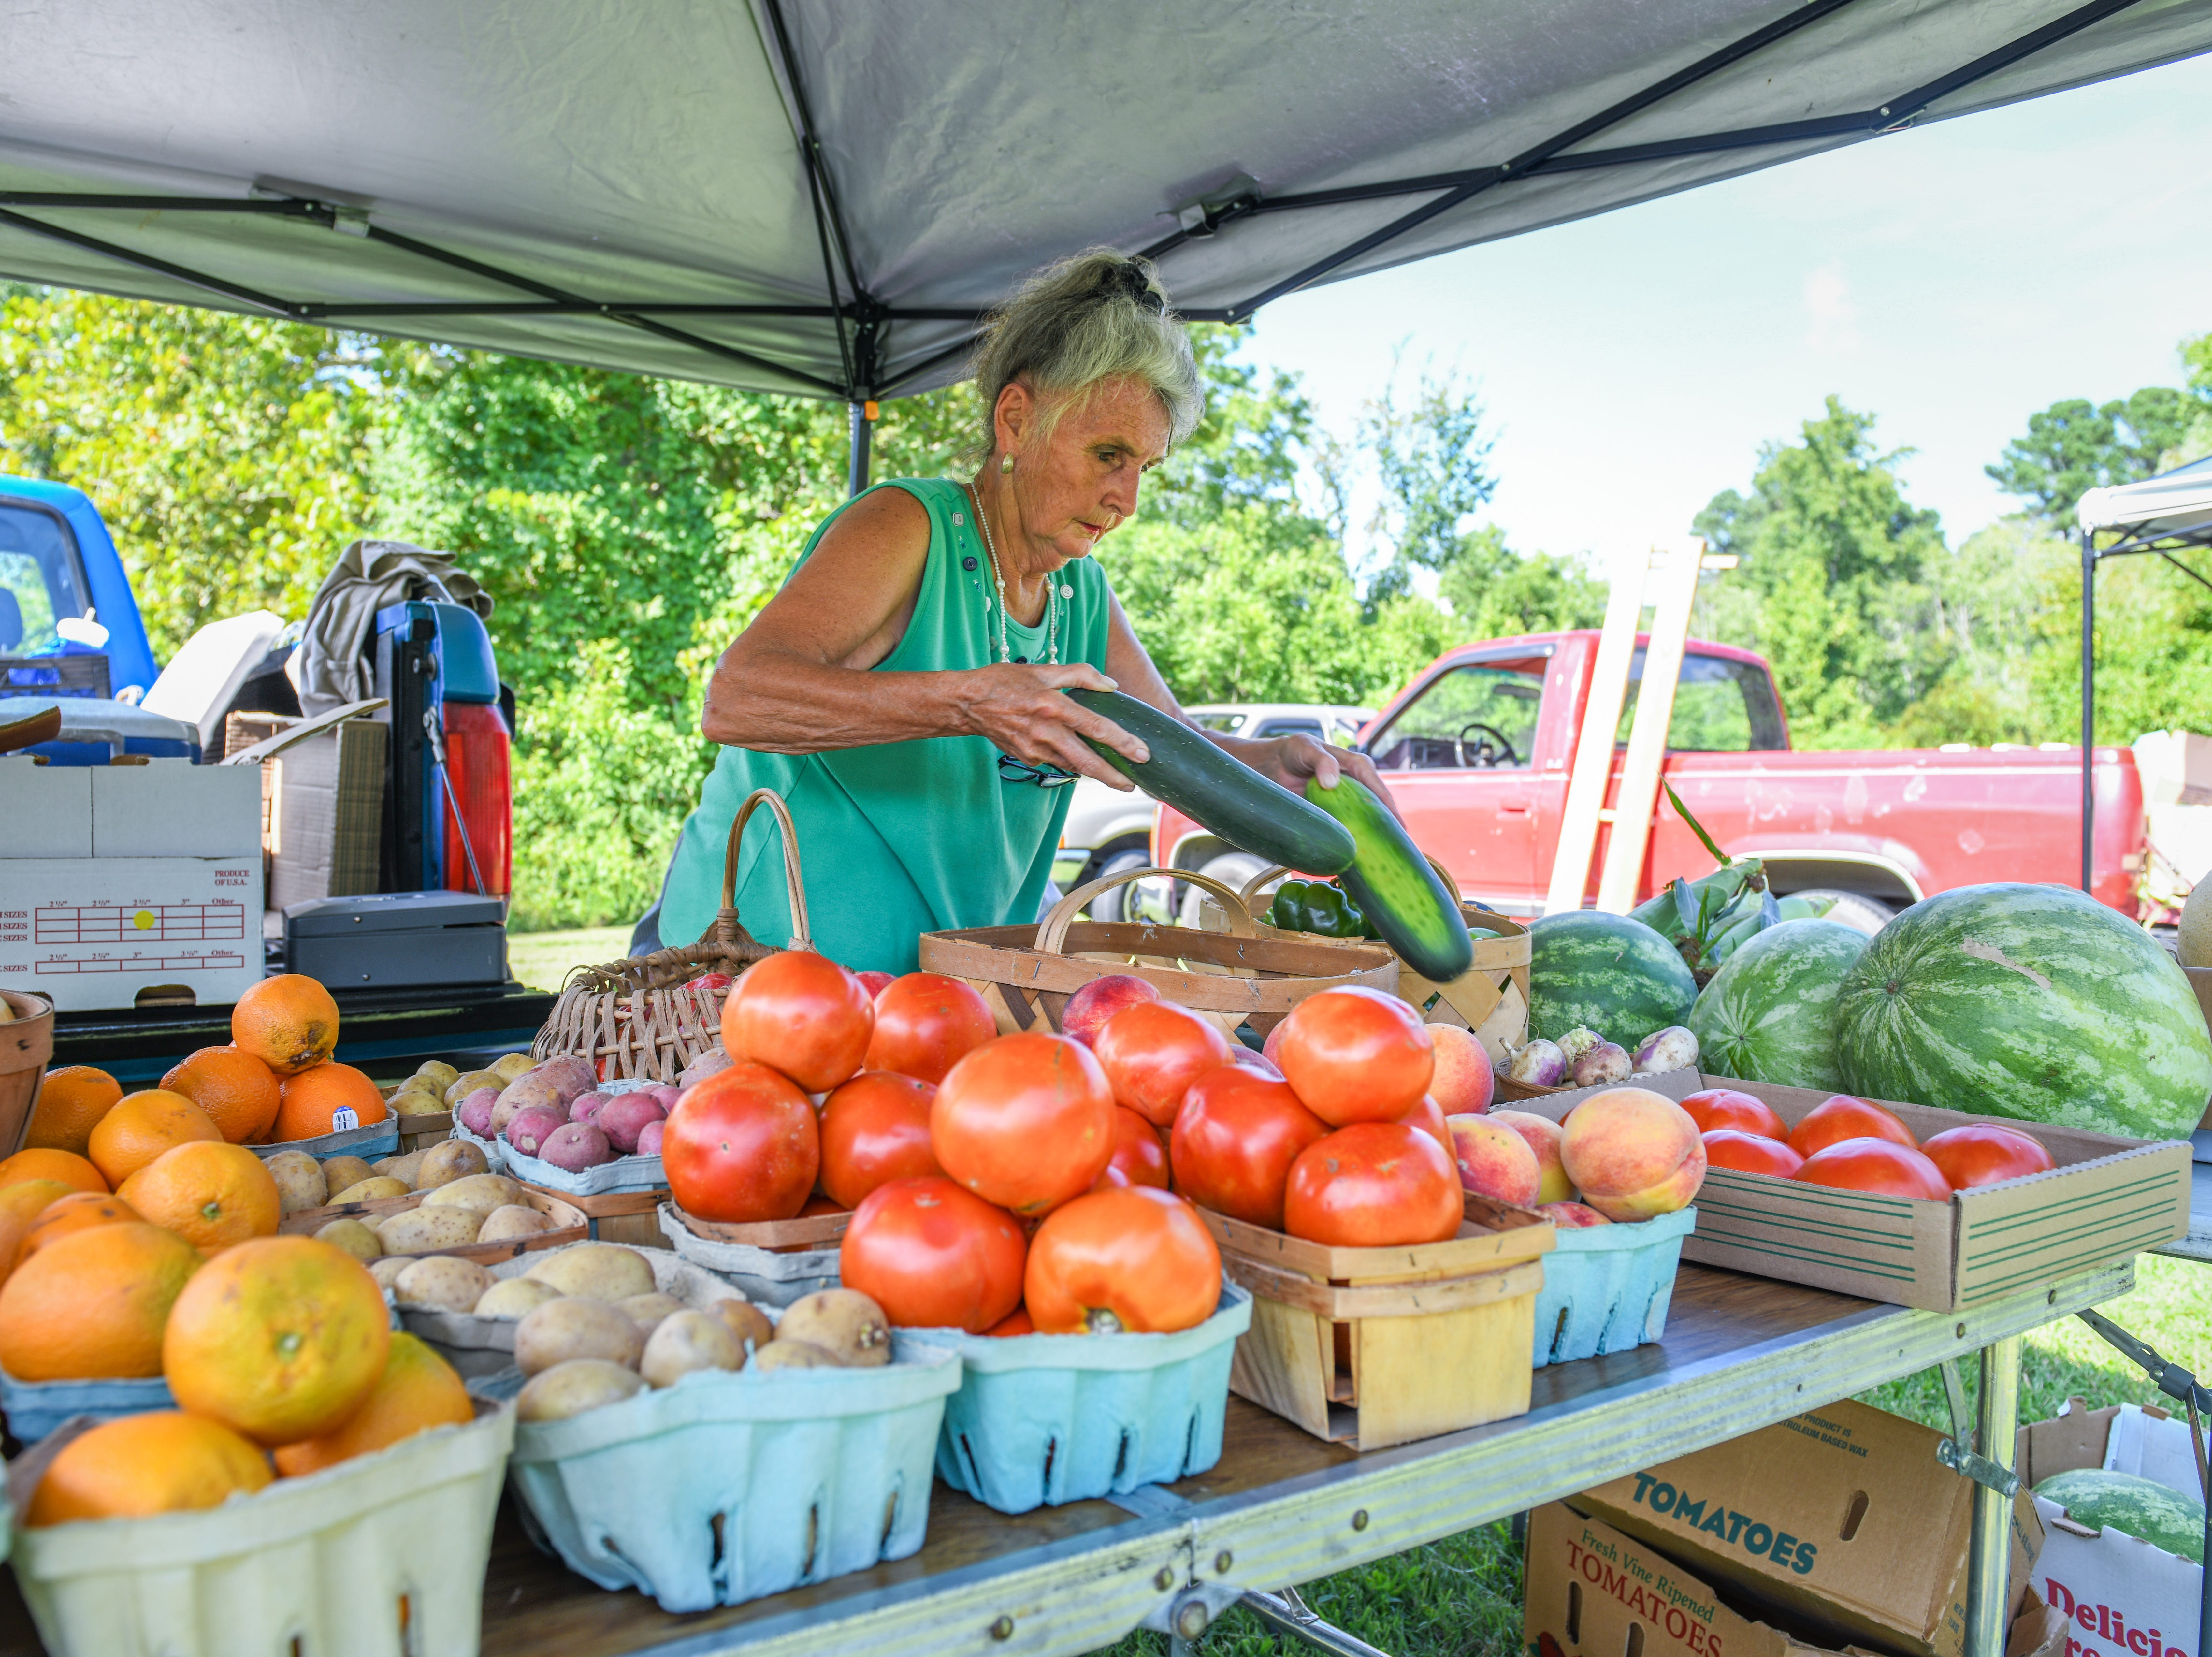 Katie Turner arranges produce at the Princess Anne farmers market on August 9. She piled her table with tomatoes, onions, potatoes, peppers and watermelon before leaving for work at Rite Aid.